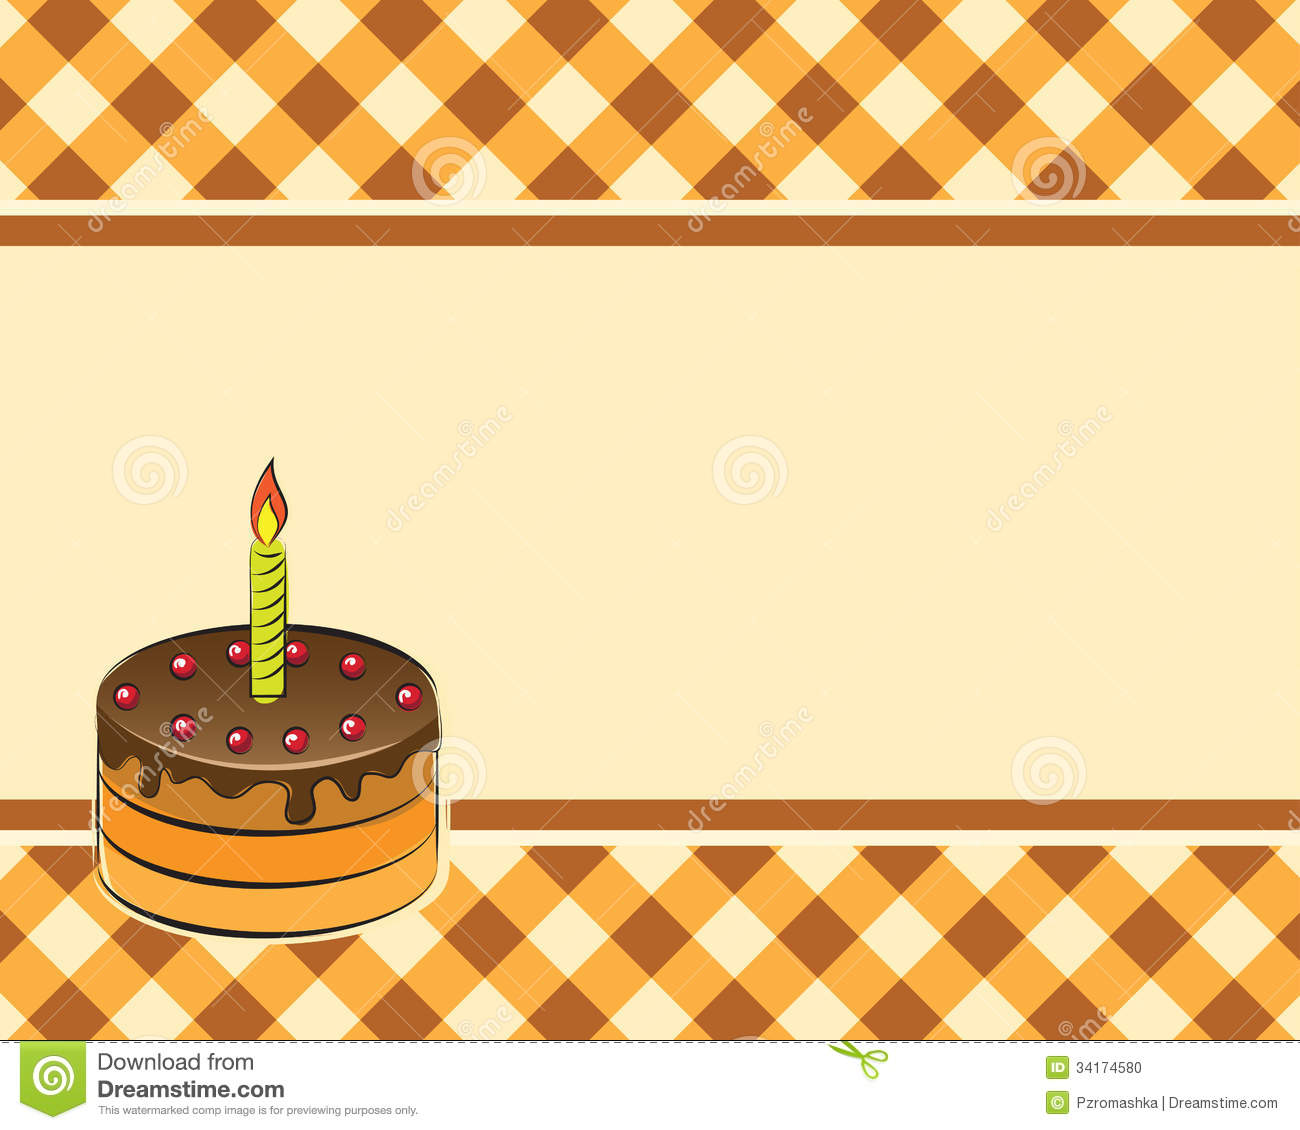 cake on a plaid background  vector illustration stock